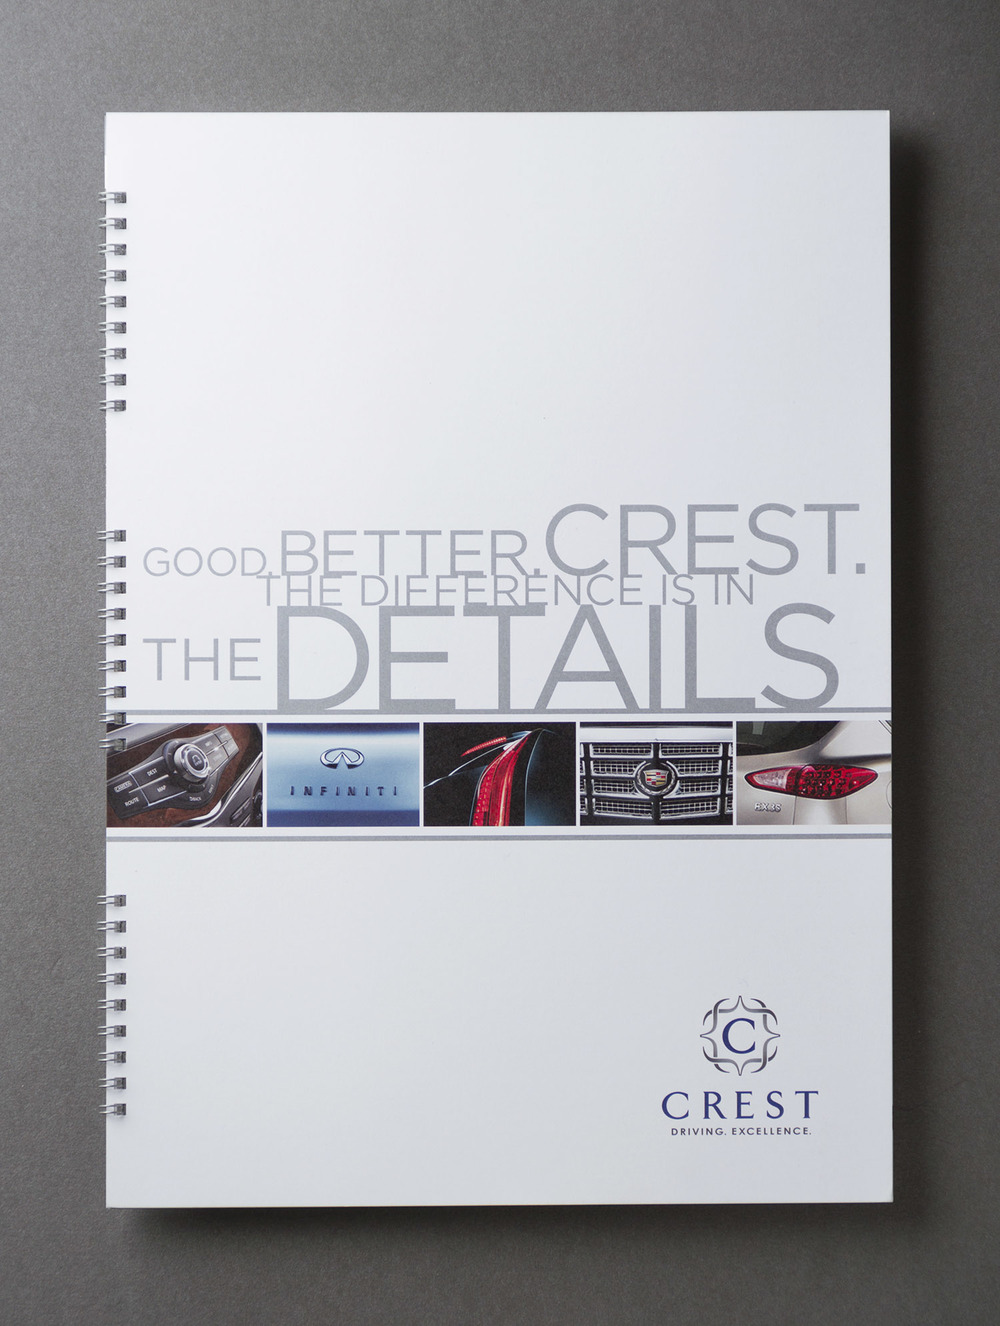 Crest Infiniti Cadillac Marketing Catalog